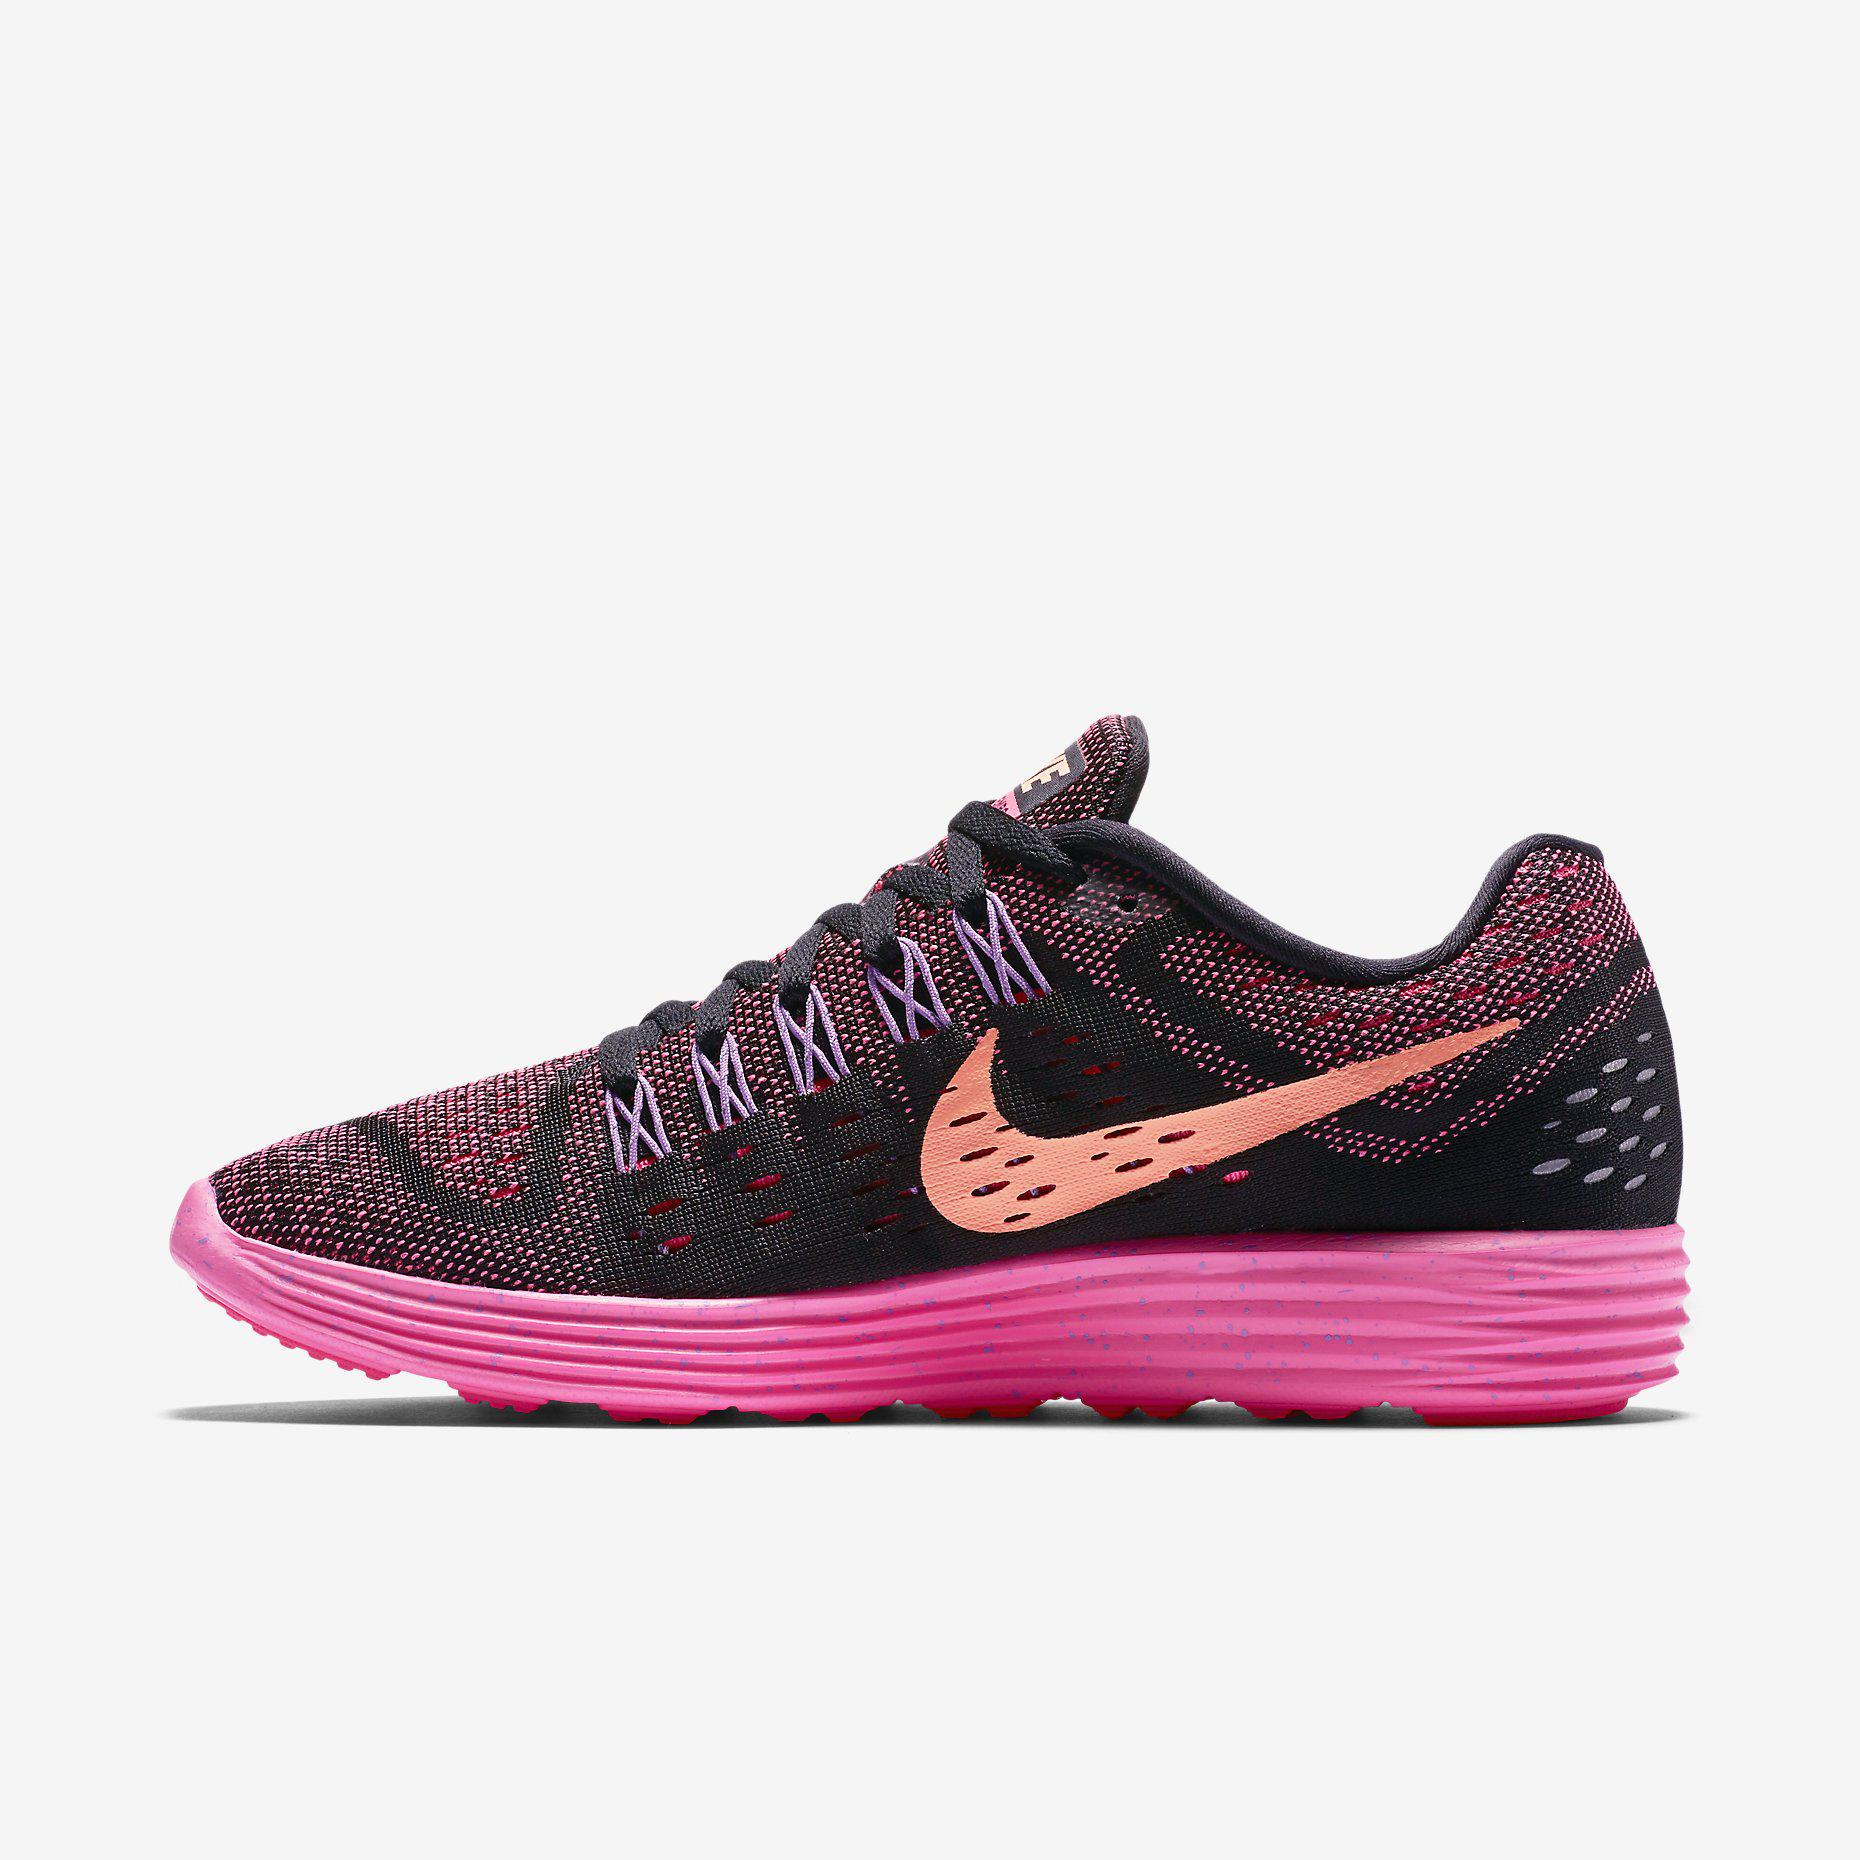 Womens Black And Pink Nike Running Shoes